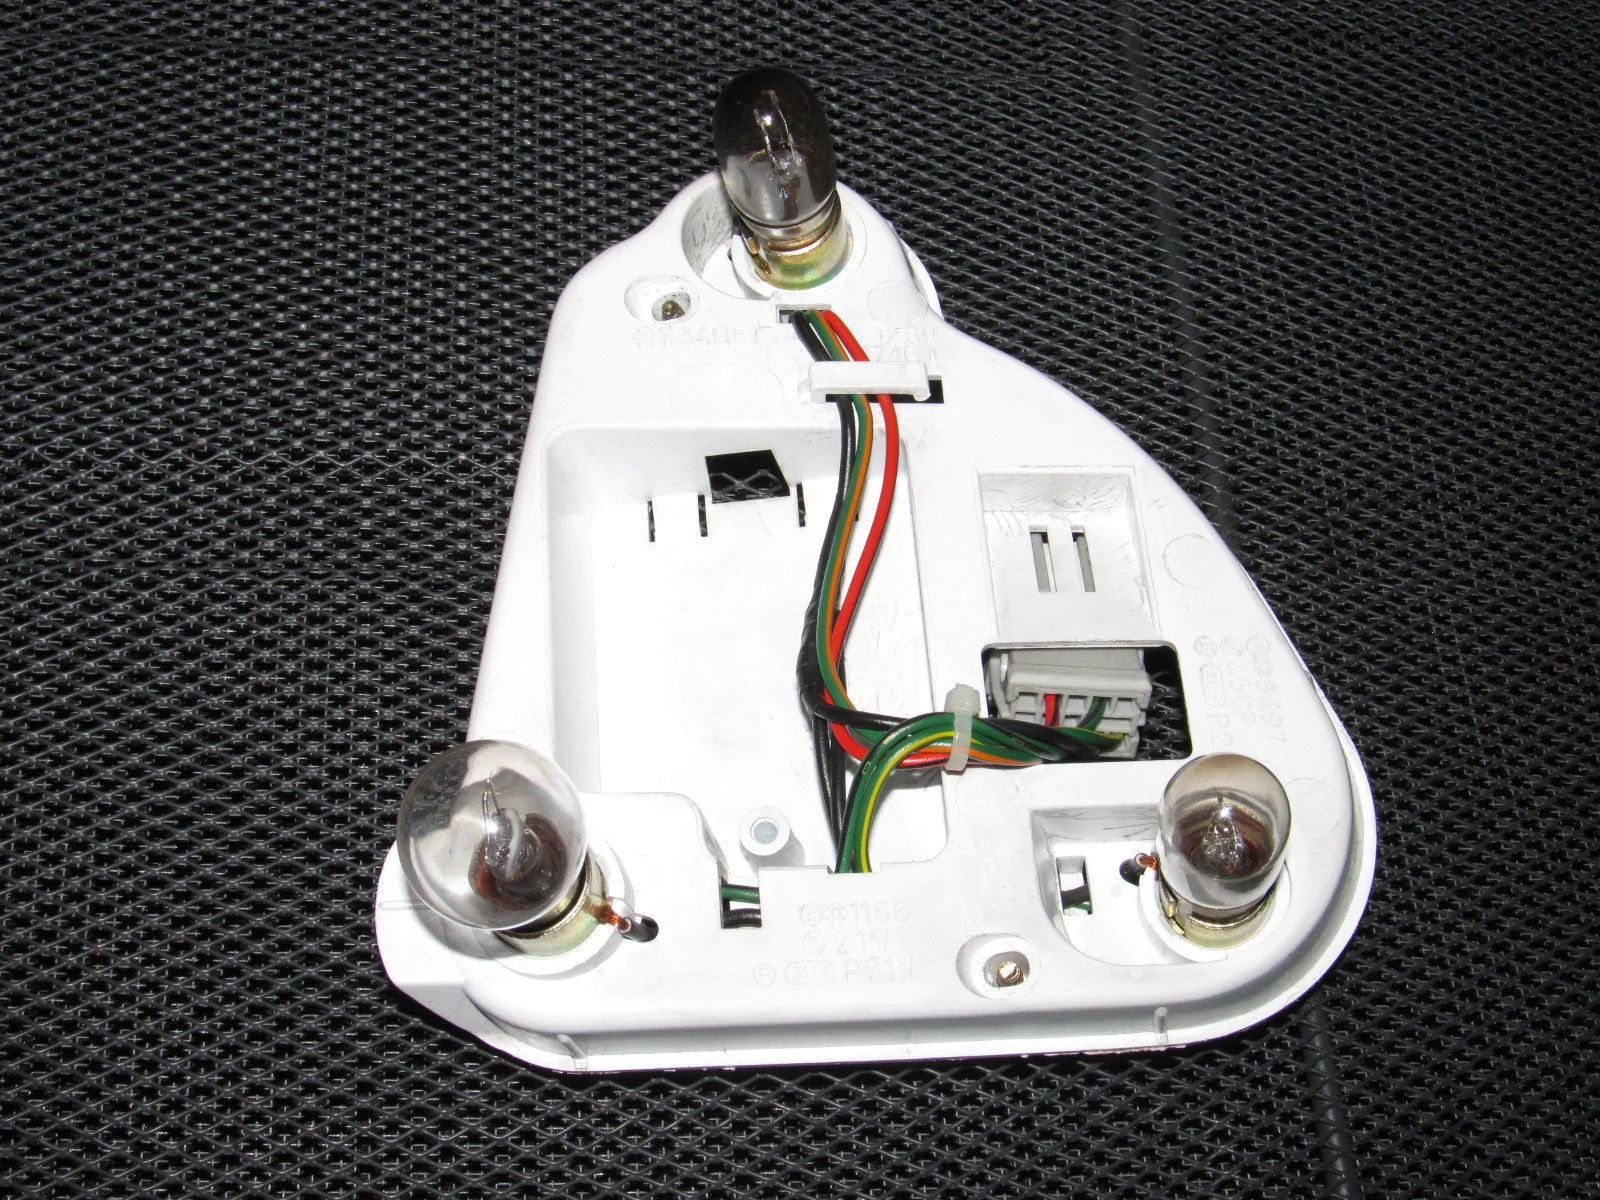 honda prelude oem tail light bulb socket panel right product image  [ 1600 x 1200 Pixel ]